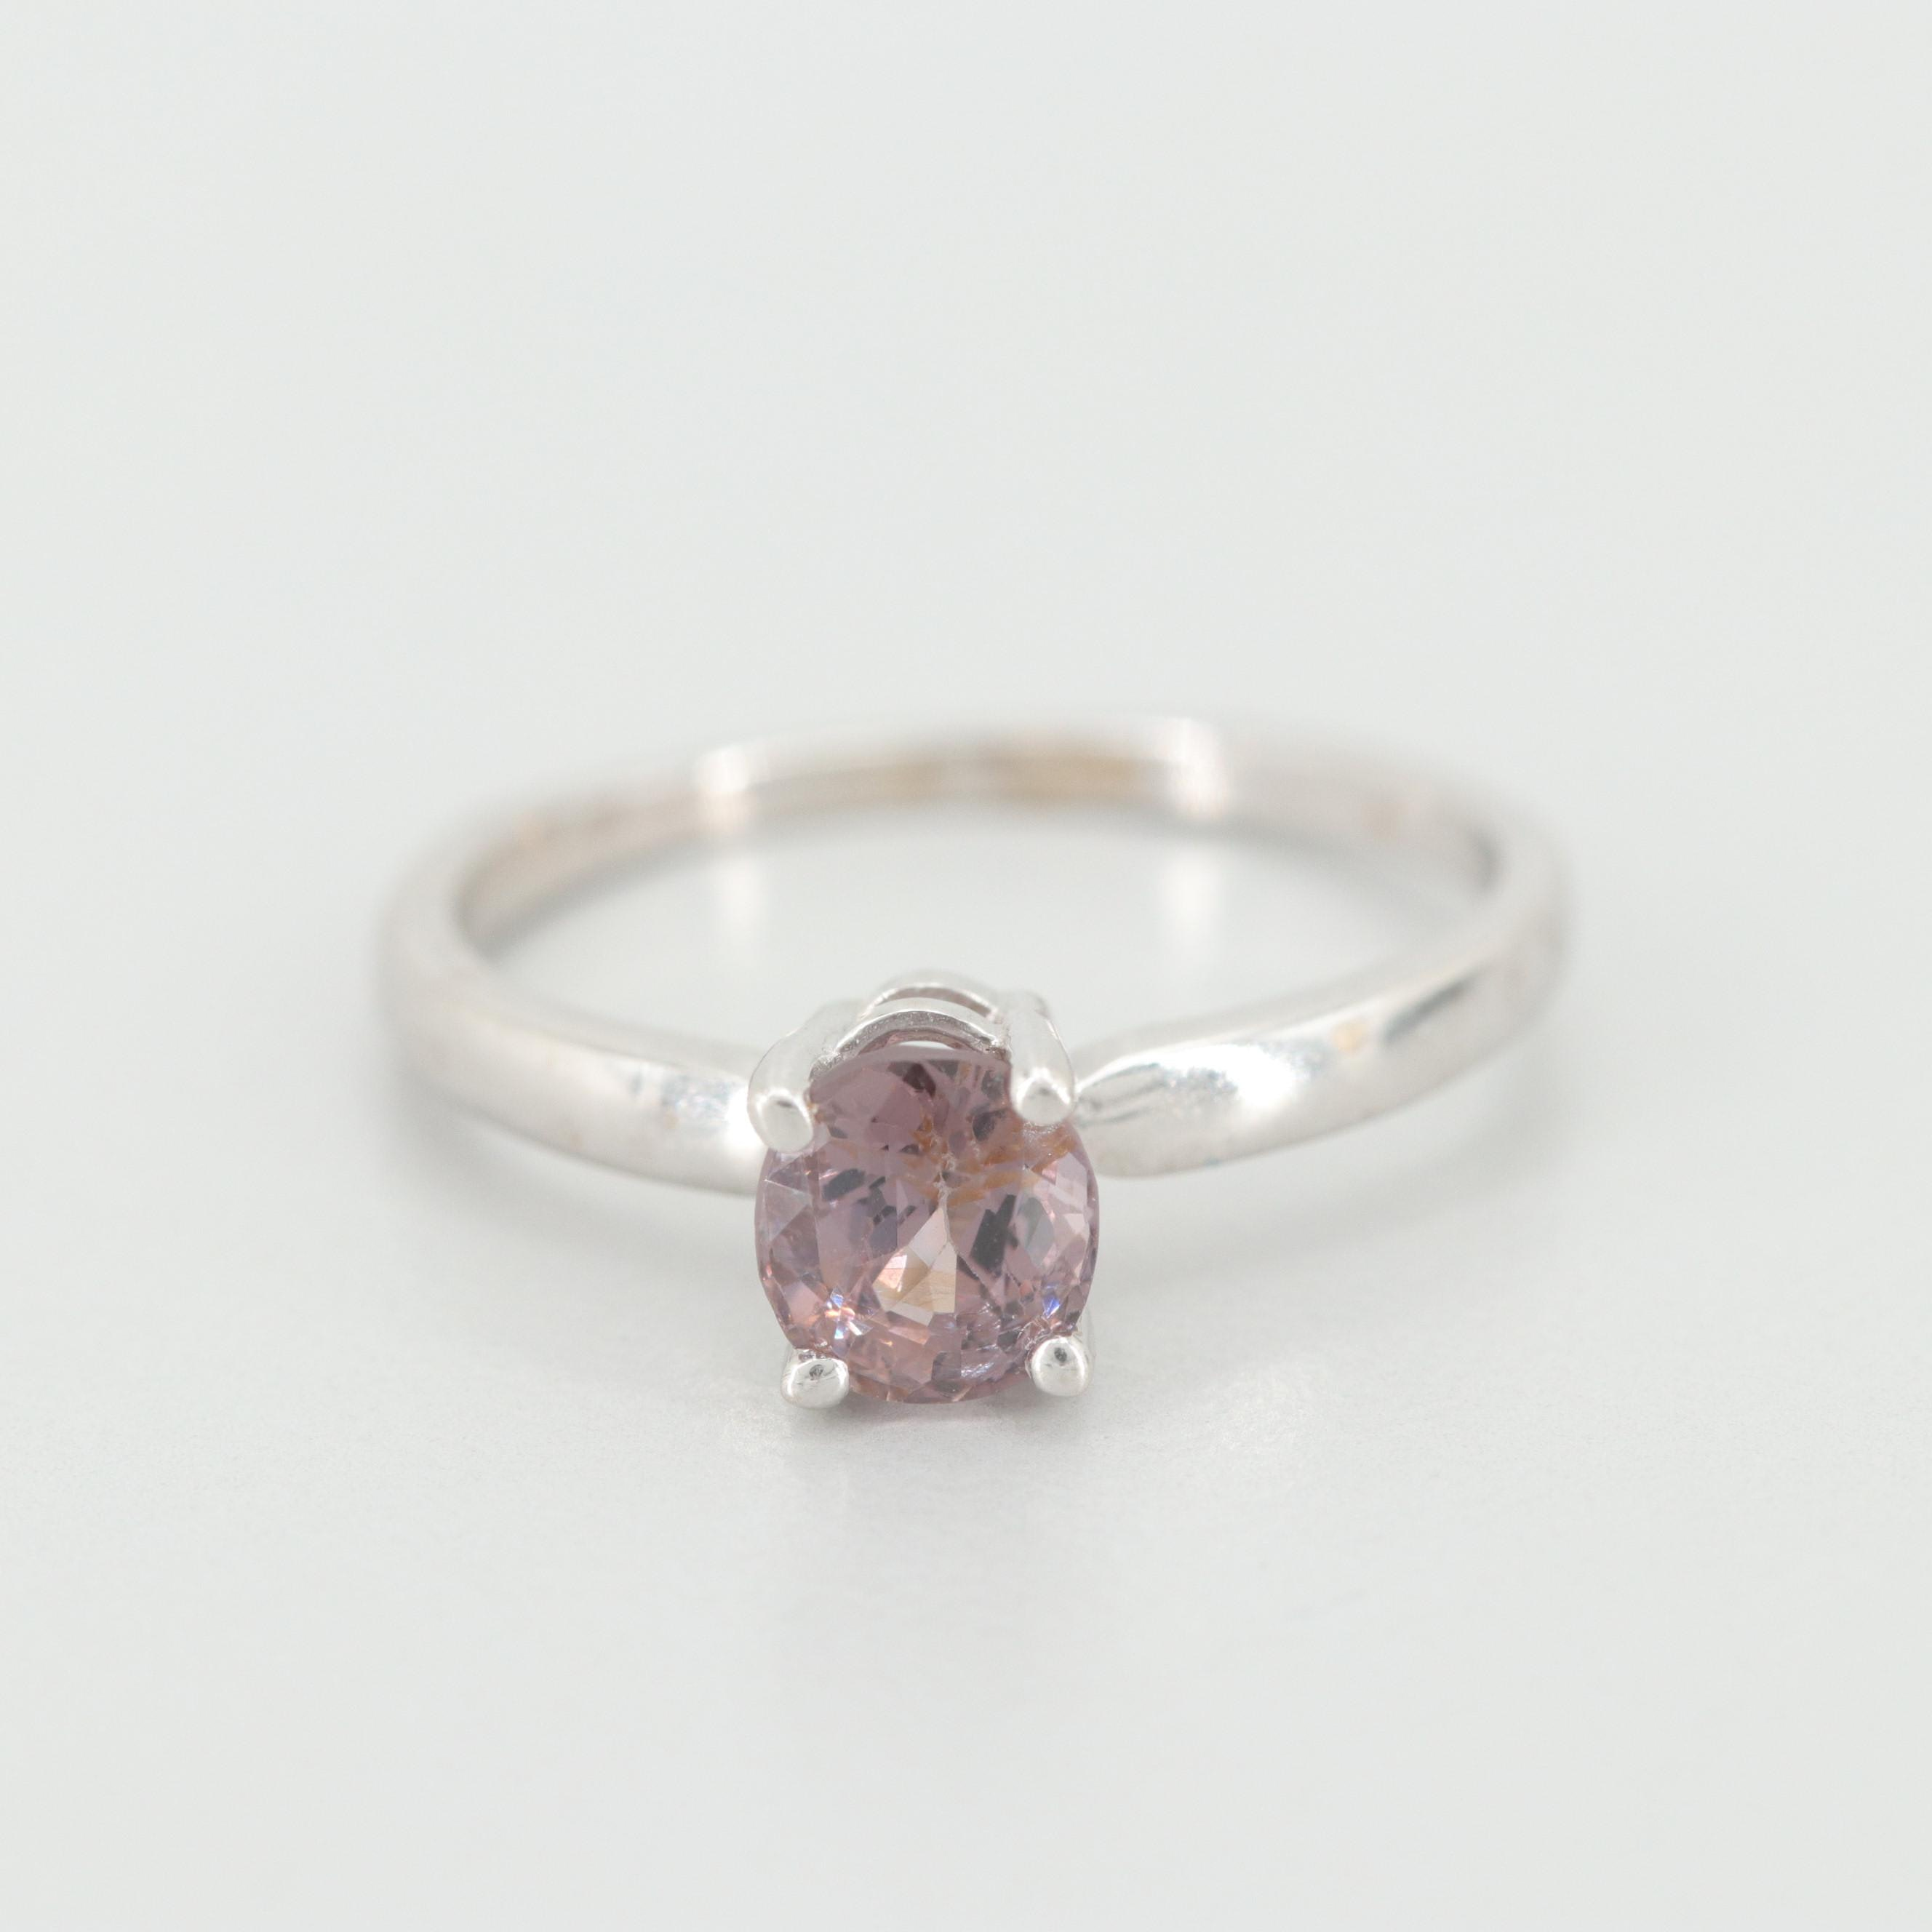 14K White Gold Spinel Solitaire Ring